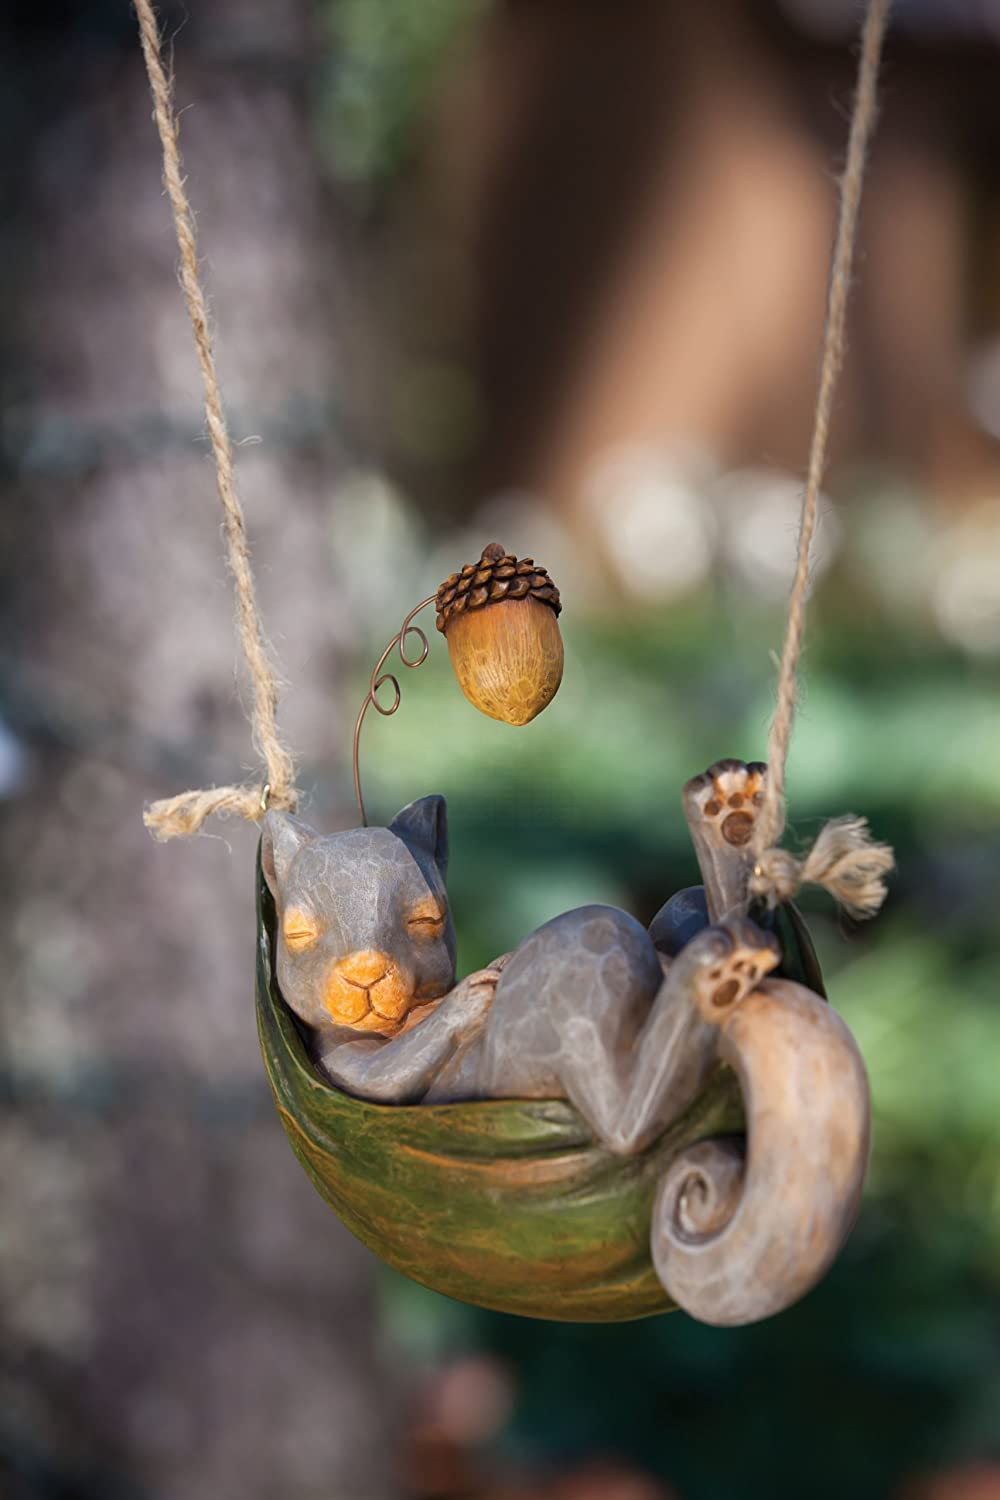 New Creative Garden Friends Day Dreamers Squirrel Statue by New Creative